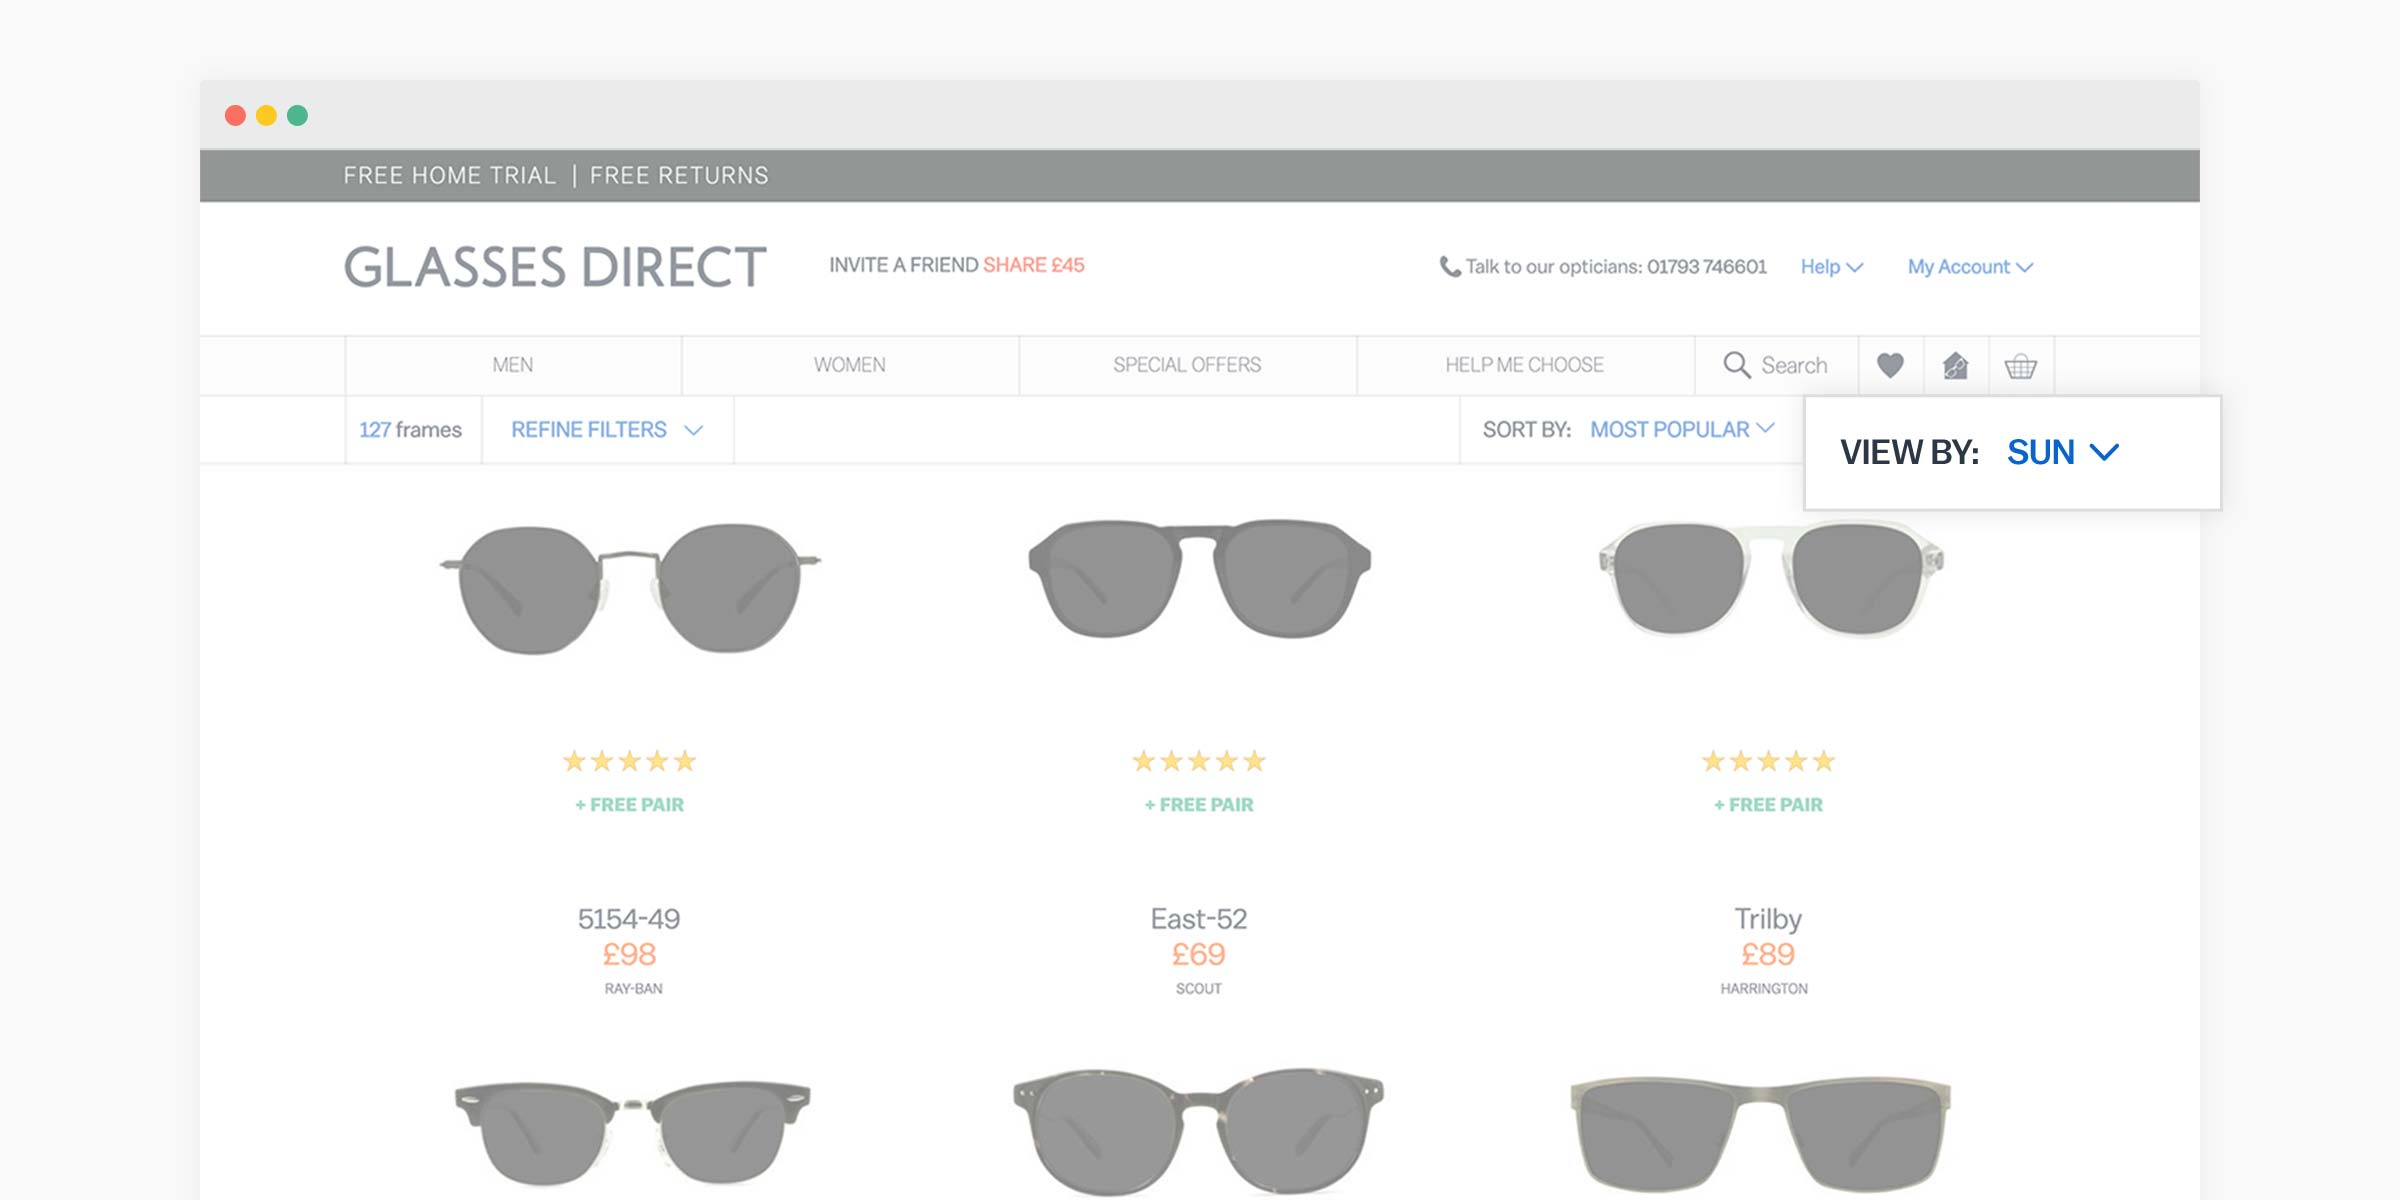 Glasses Direct product listing page with the 'View by: SUN' option highlighted to see prescription sunglasses